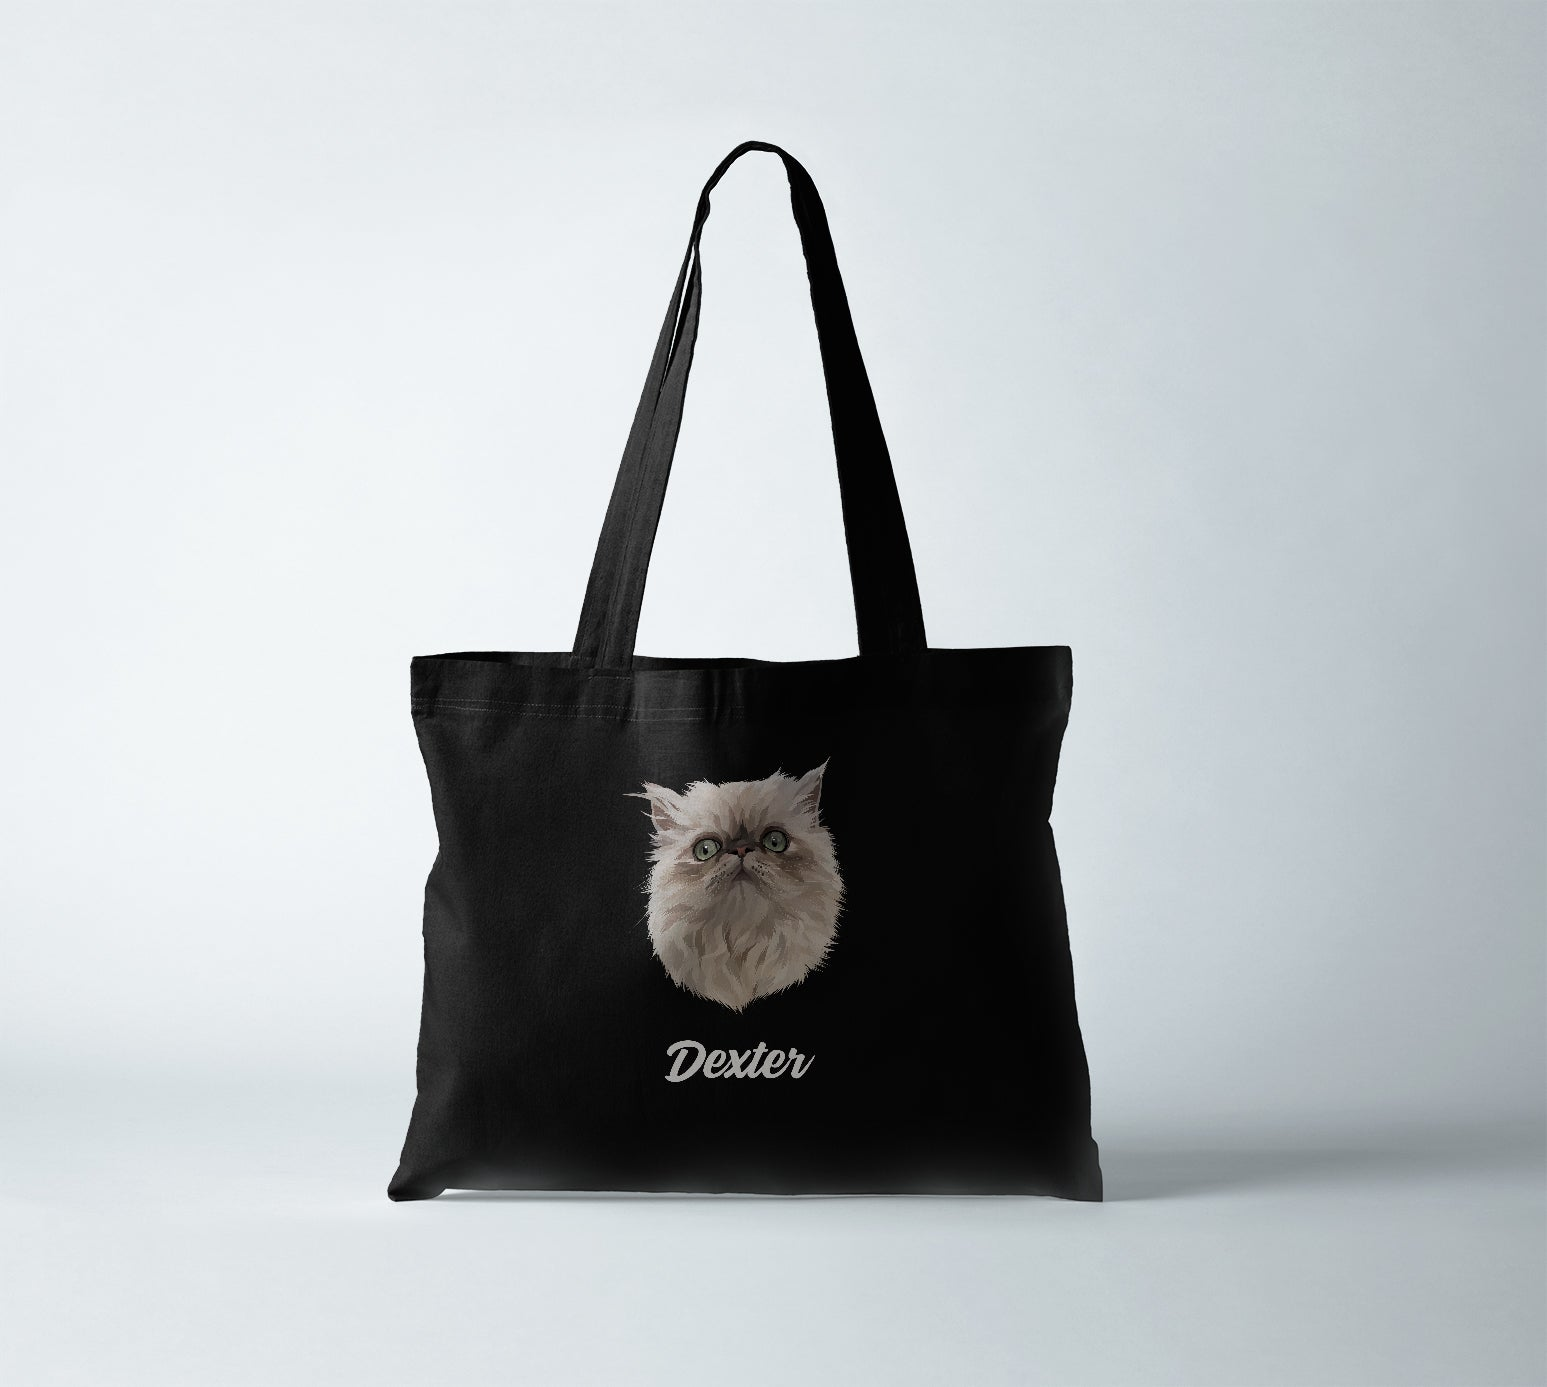 100% certified organic canvas tote bag in jet black, with personalized pet portrait of a cat with its name in white.